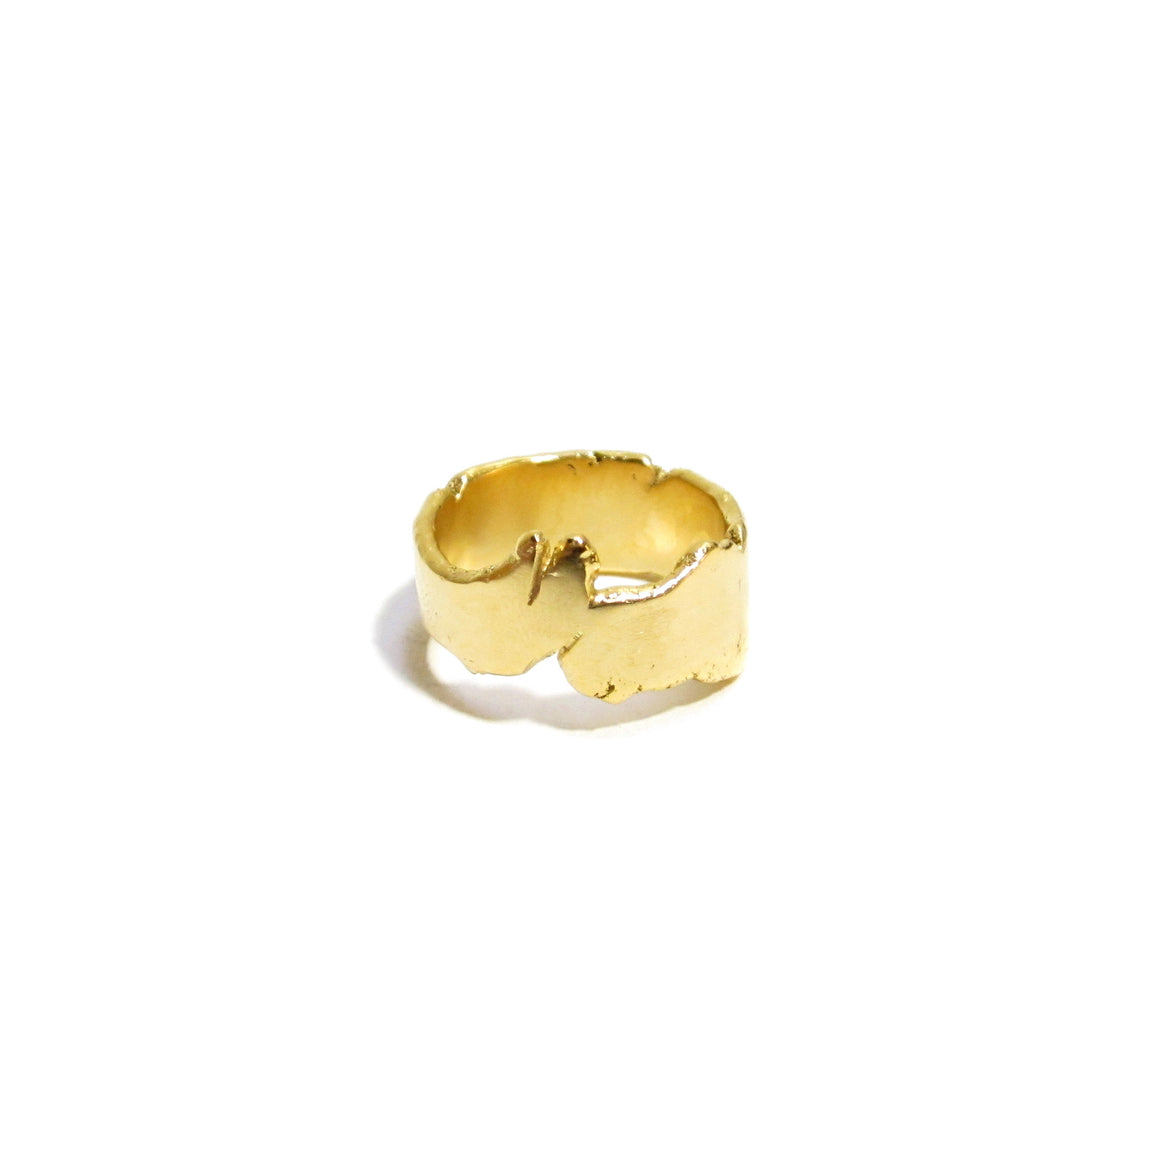 handmade gold plated silver ring for men or women